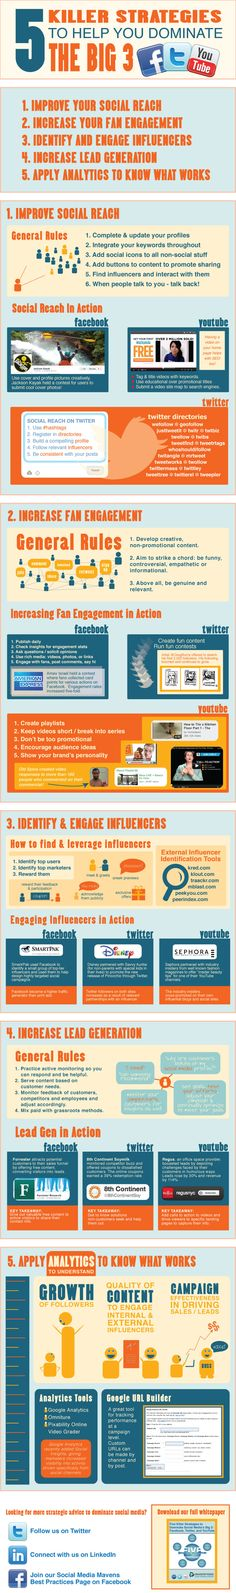 5 Killer Strategies to Help you Dominate FaceBook, Twitter and  YouTube. #Infographic